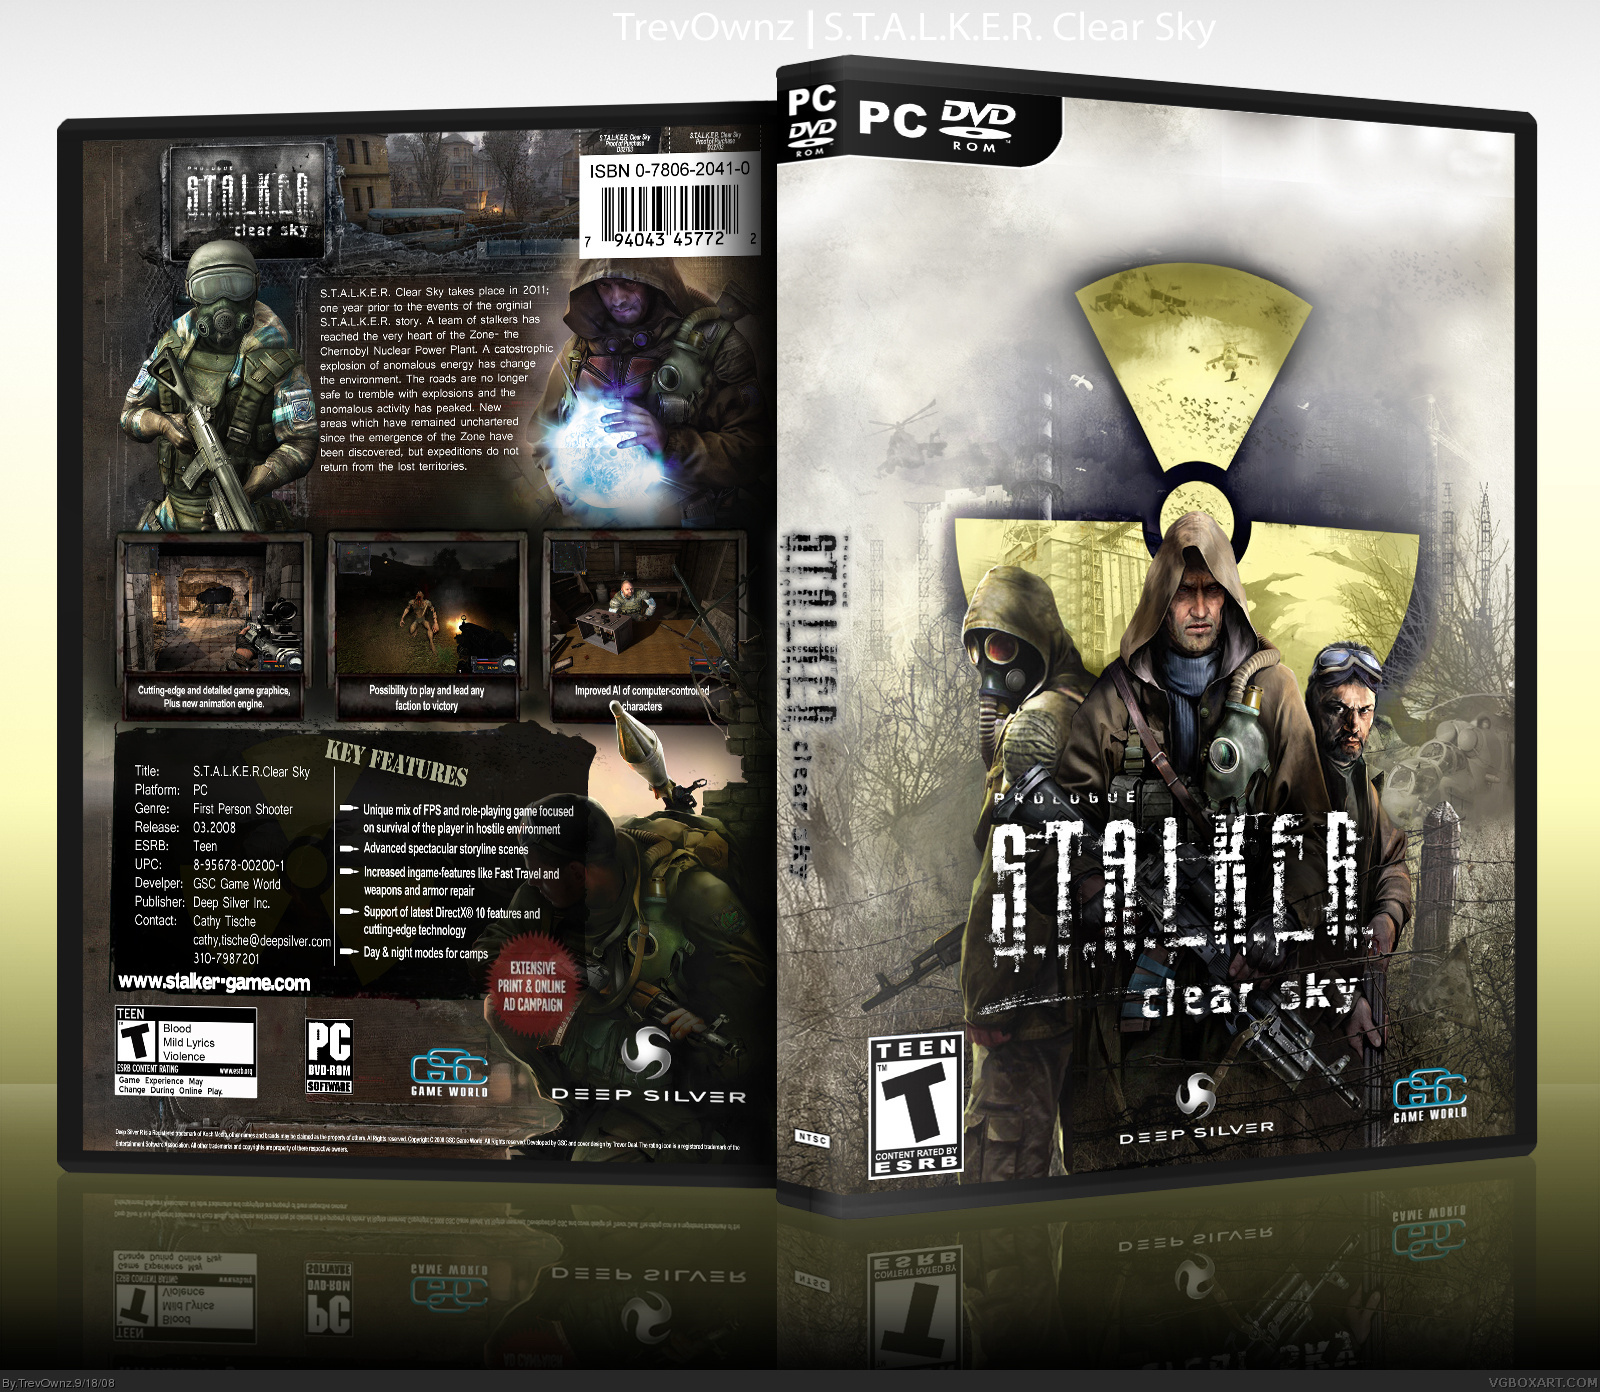 S T A L K E R Clear Sky Pc Box Art Cover By Trevownz